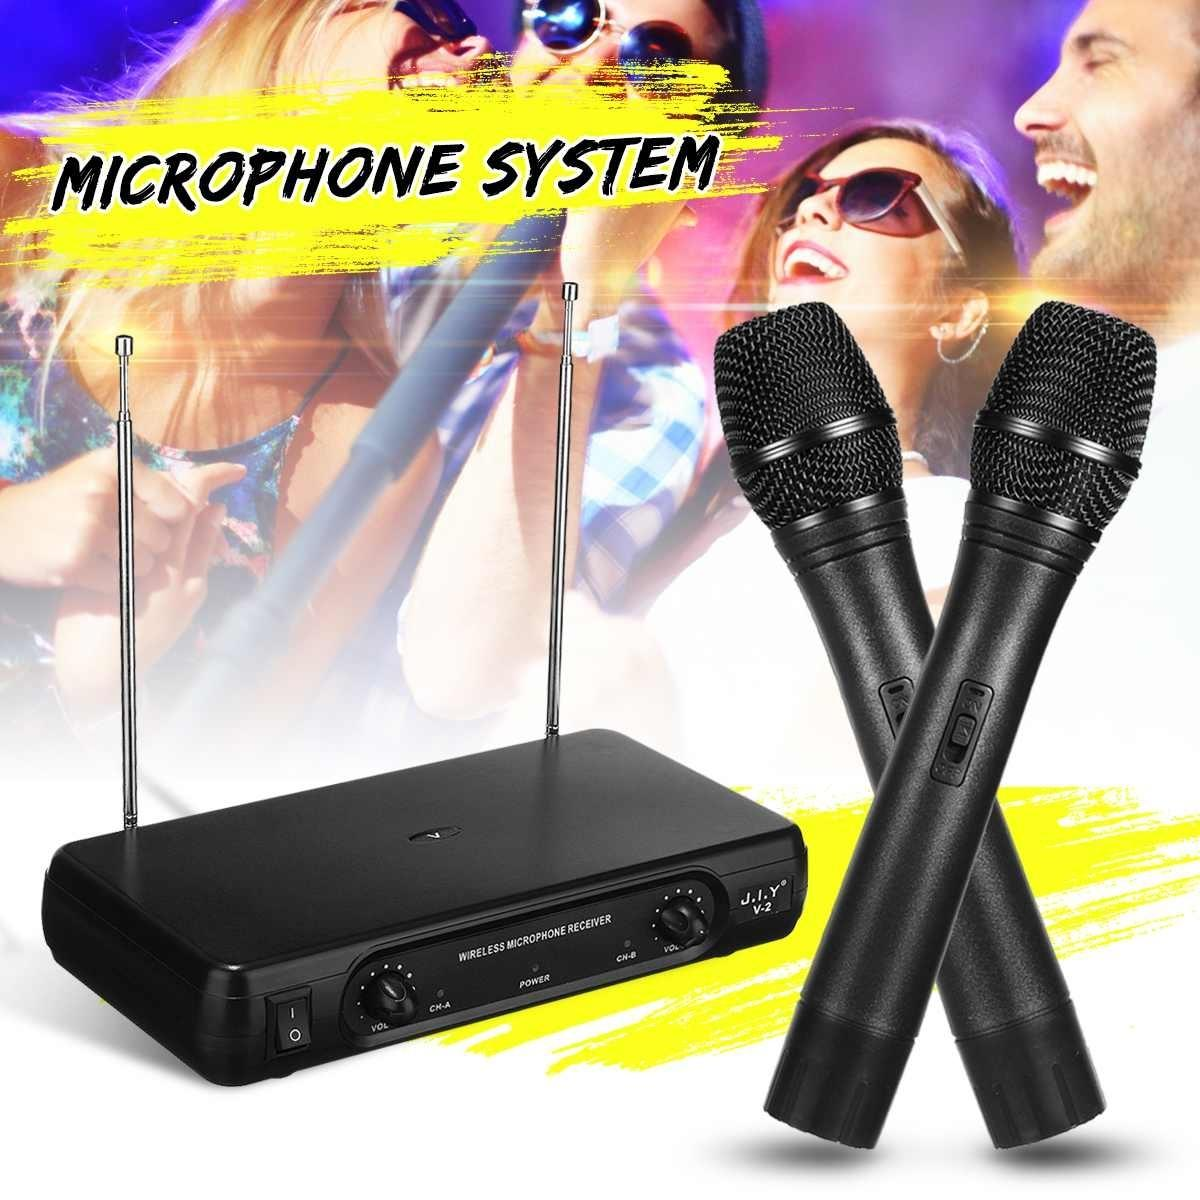 Dual Professional VHF Wireless Microphone System Cordless Handheld Mic Receiver Microphones Karaoke with 2 Microphones T191021